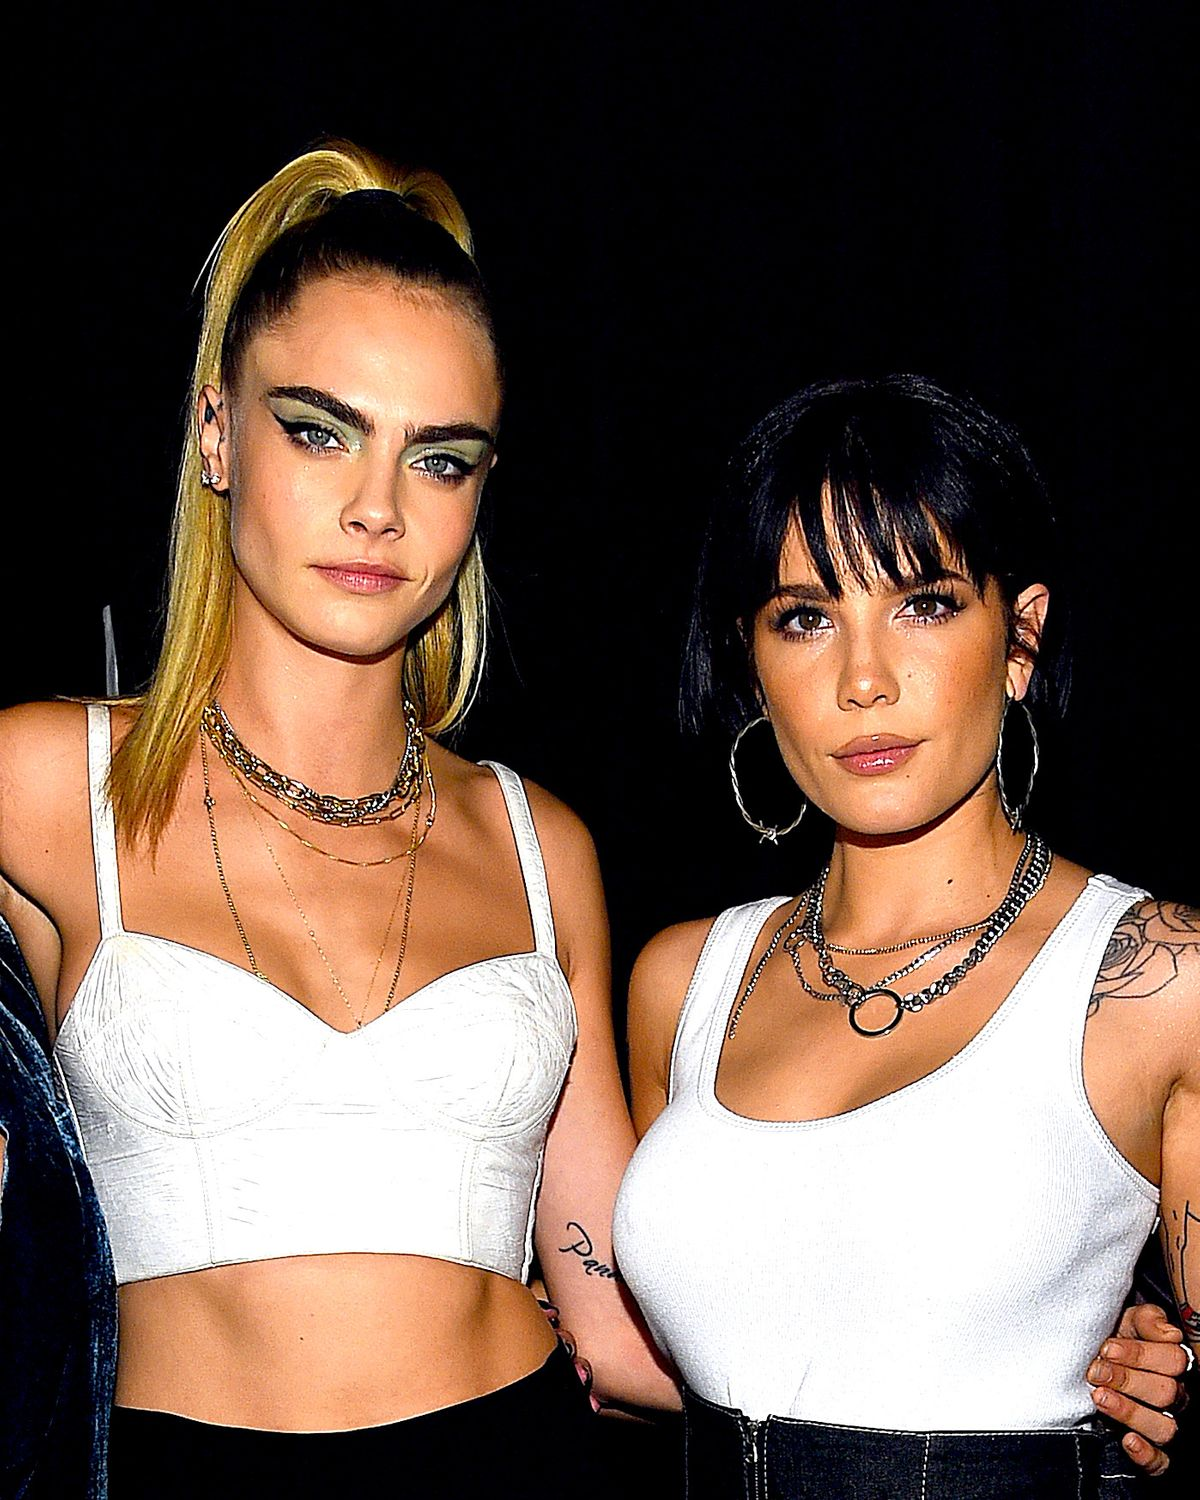 Cara Delevingne And Halsey May Be Hooking Up Now